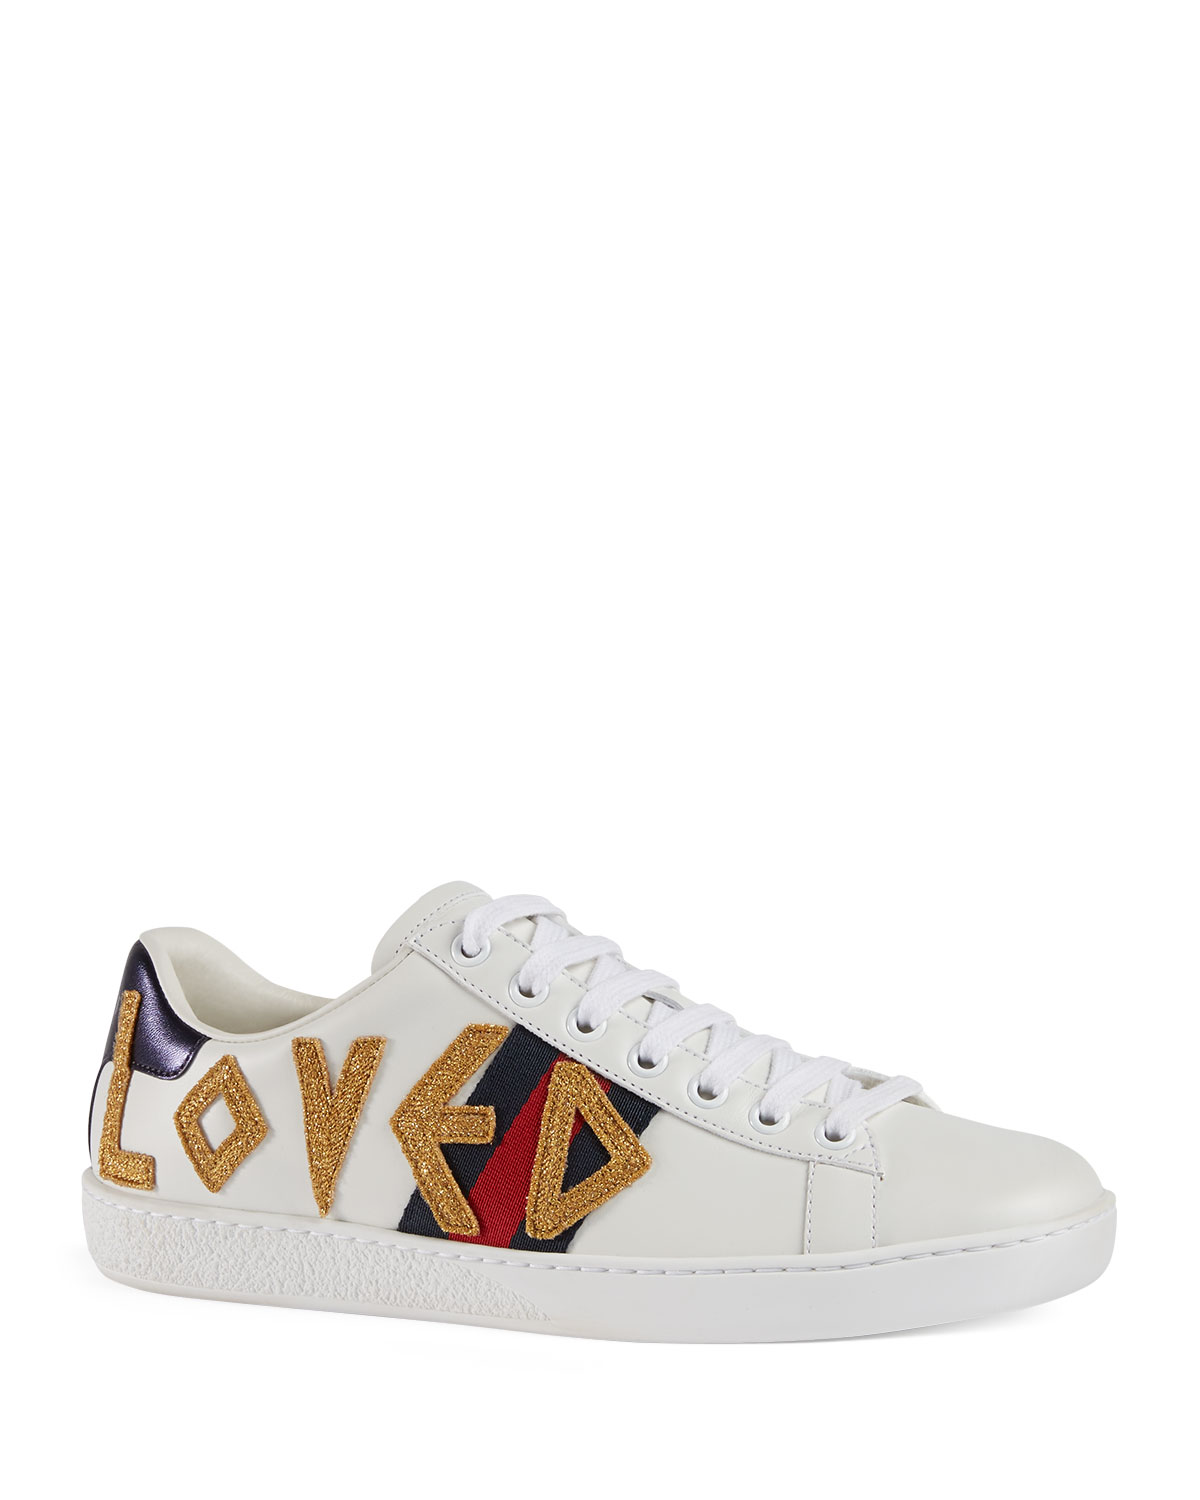 6459288bdbd95 Quick Look. Gucci · New Ace  Loved  Leather Trainer. Available in White